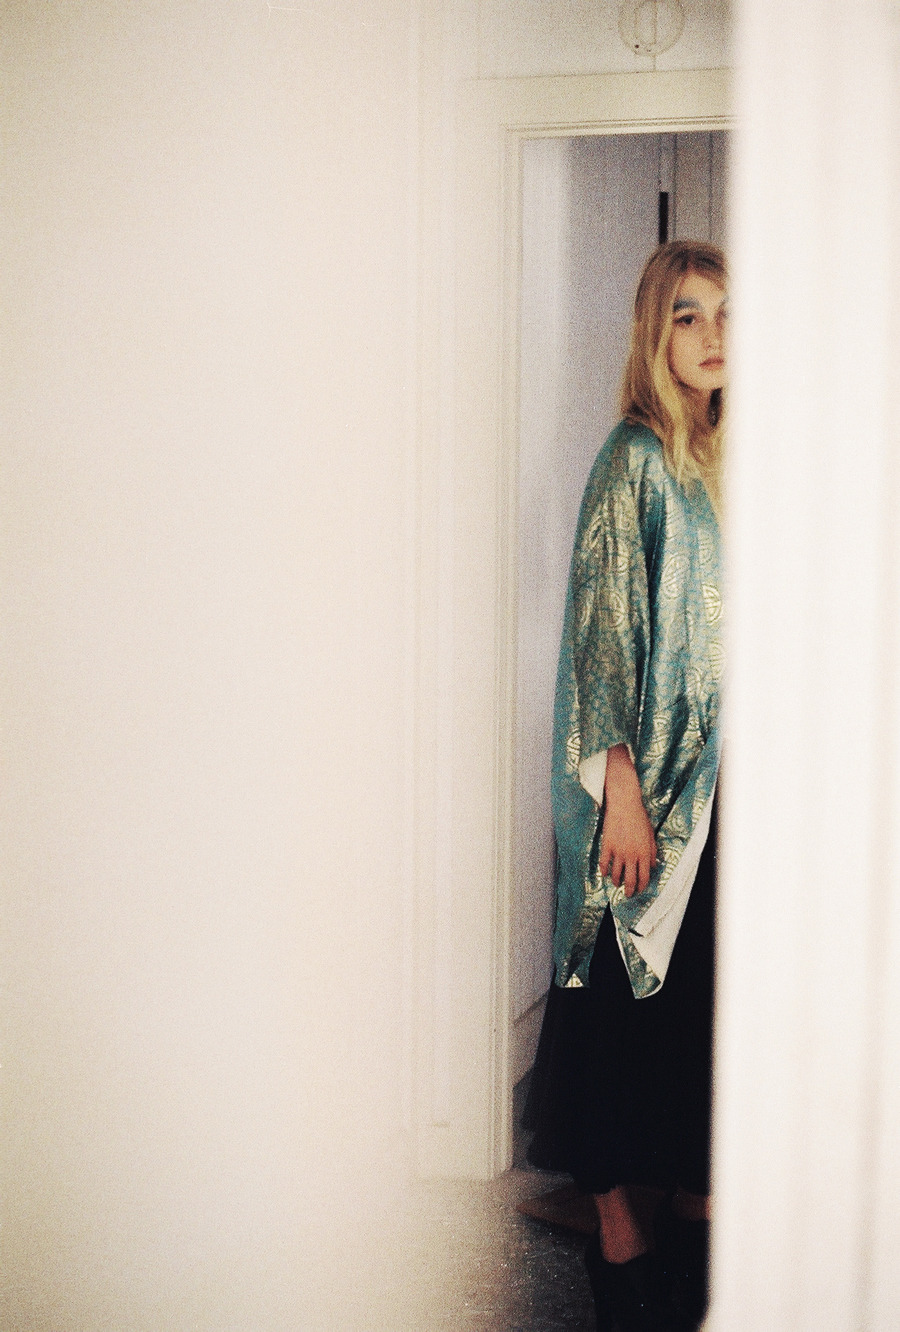 thewakeupcall / photographed by Lauren Withrow for REVS Magazine.